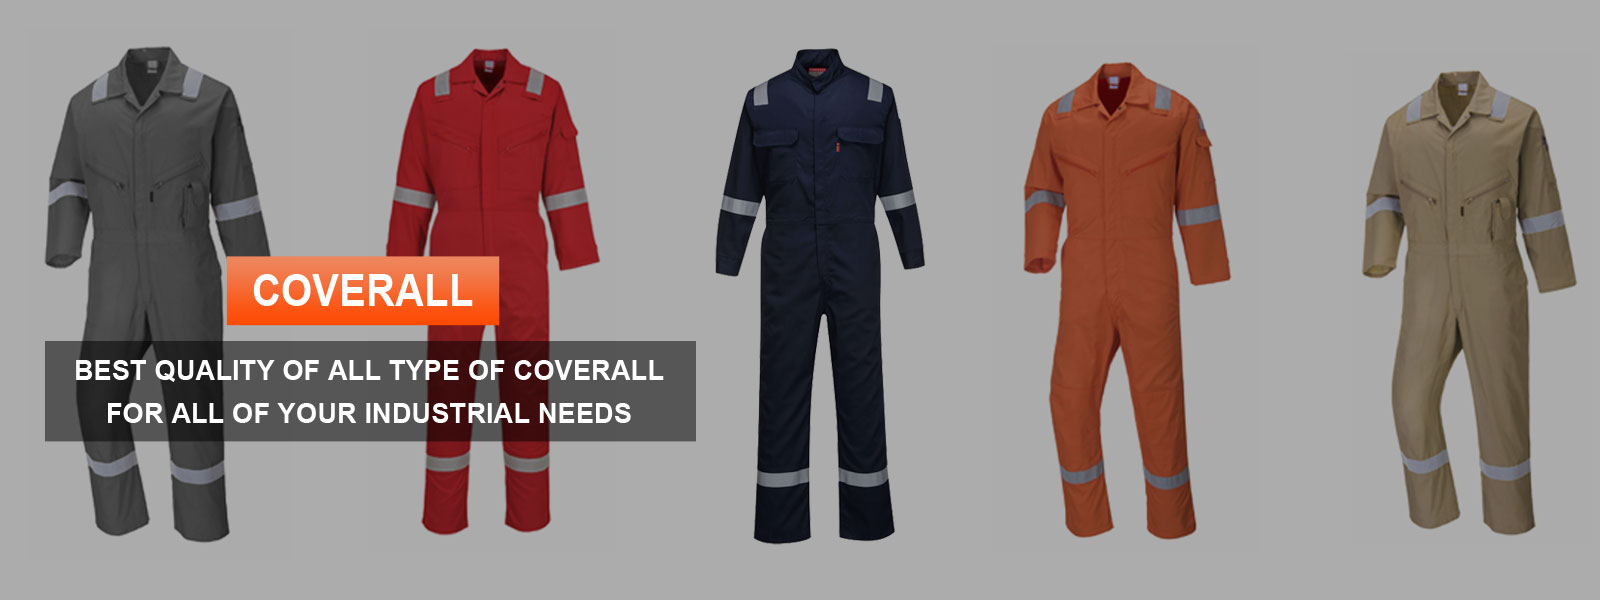 Coverall Manufacturers in Afghanistan